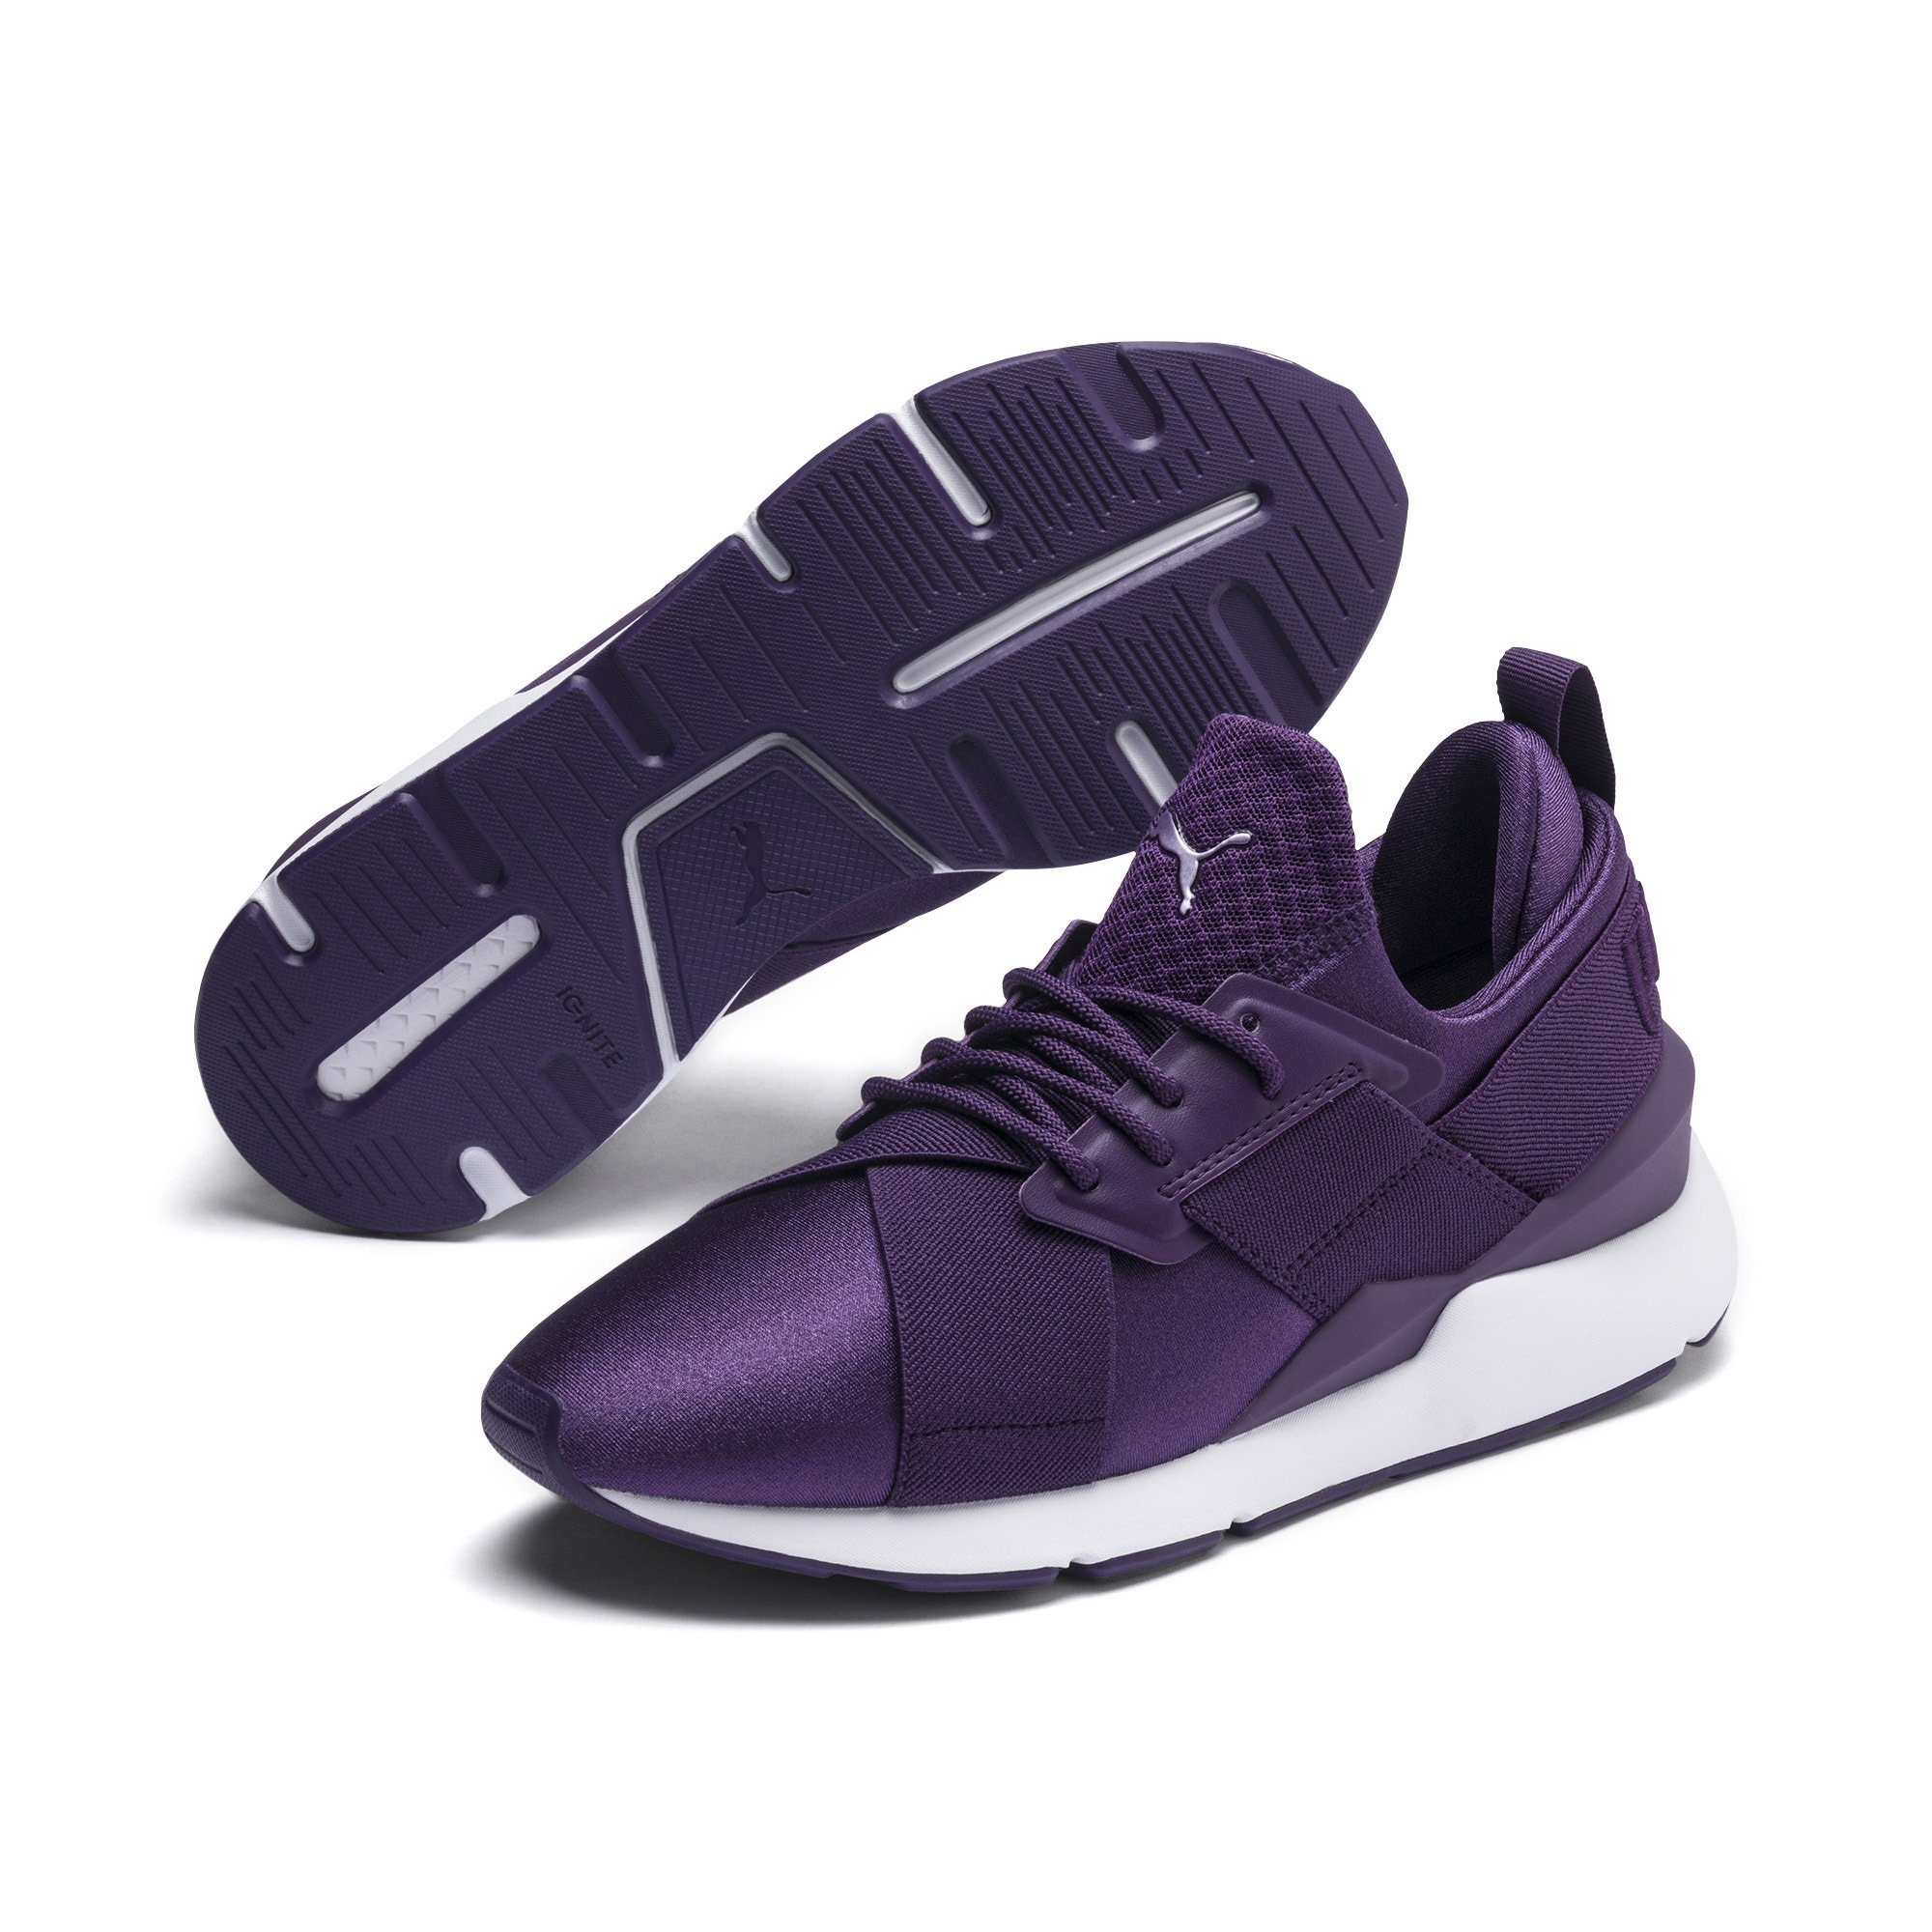 PUMA, Dames Sneakers laag 'Muse Satin Ep Wn's', donkerlila